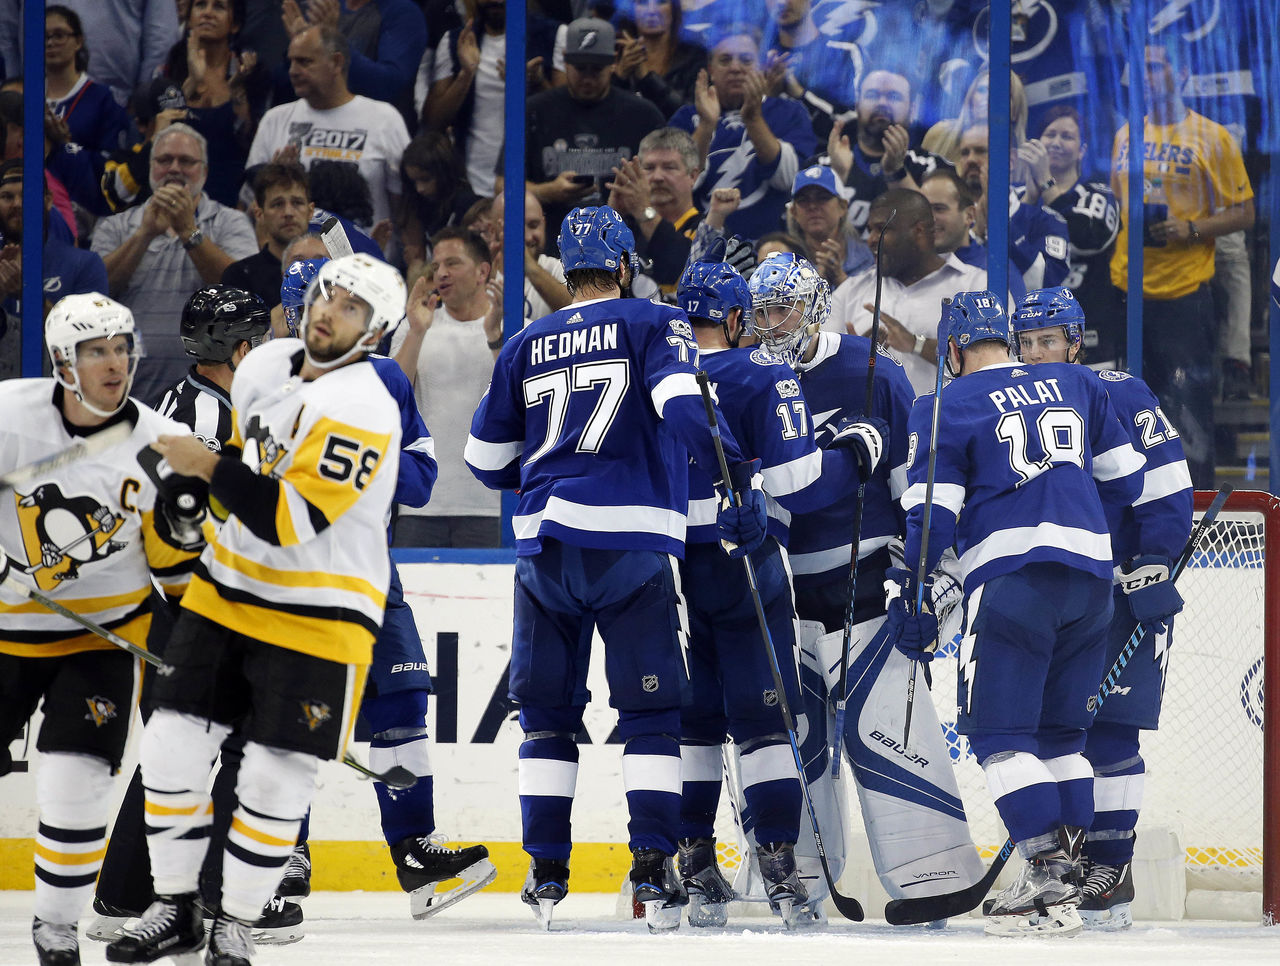 Cropped 2017 10 13t024201z 345212699 nocid rtrmadp 3 nhl pittsburgh penguins at tampa bay lightning